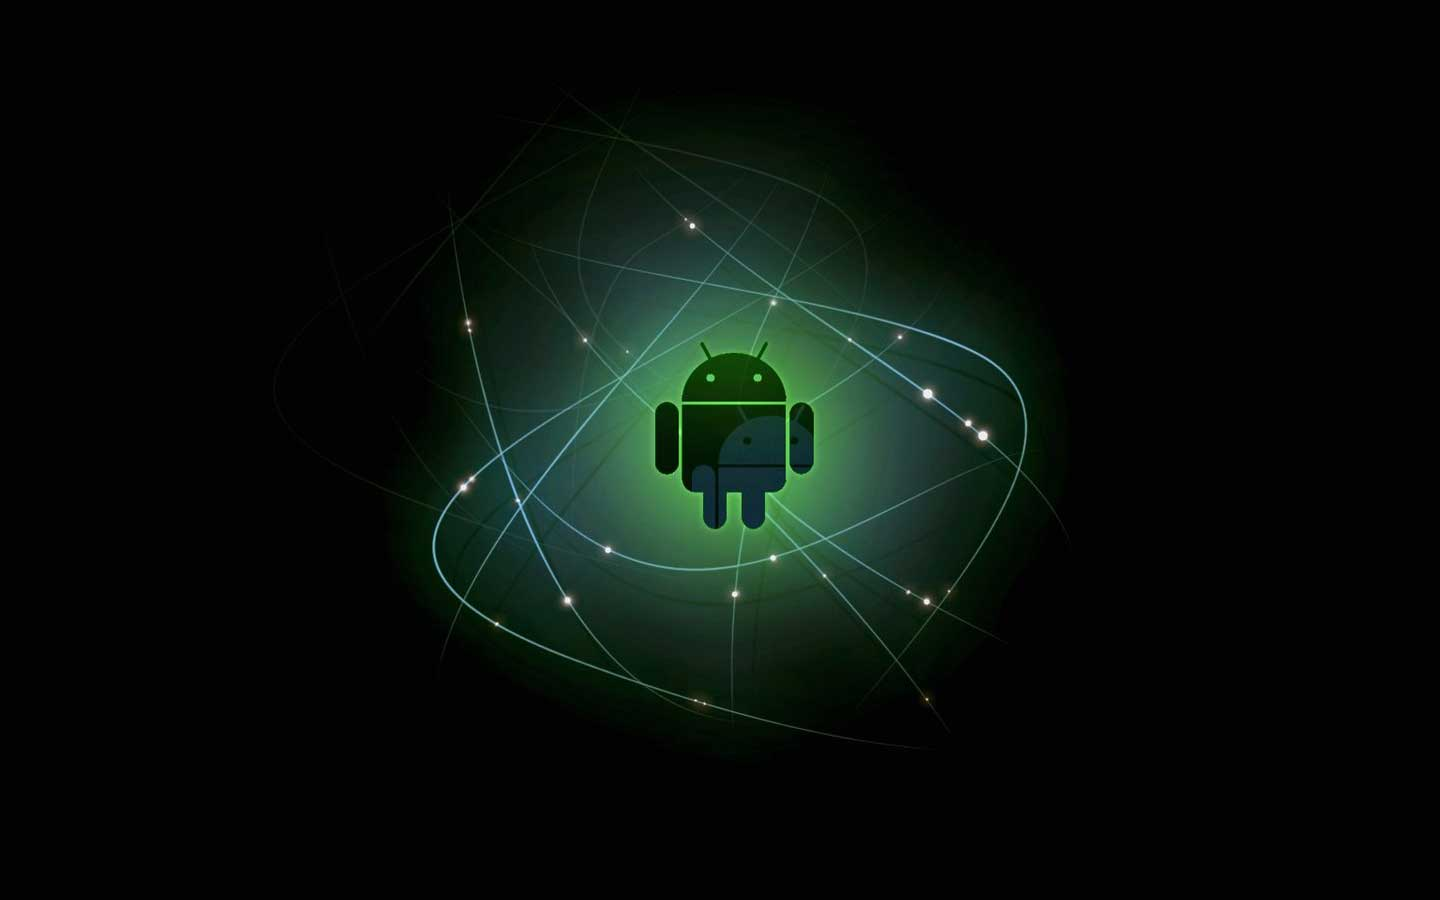 Hd wallpaper for android - Best Android Jelly Bean Wallpaper For Android Wallpaper With 1440x900